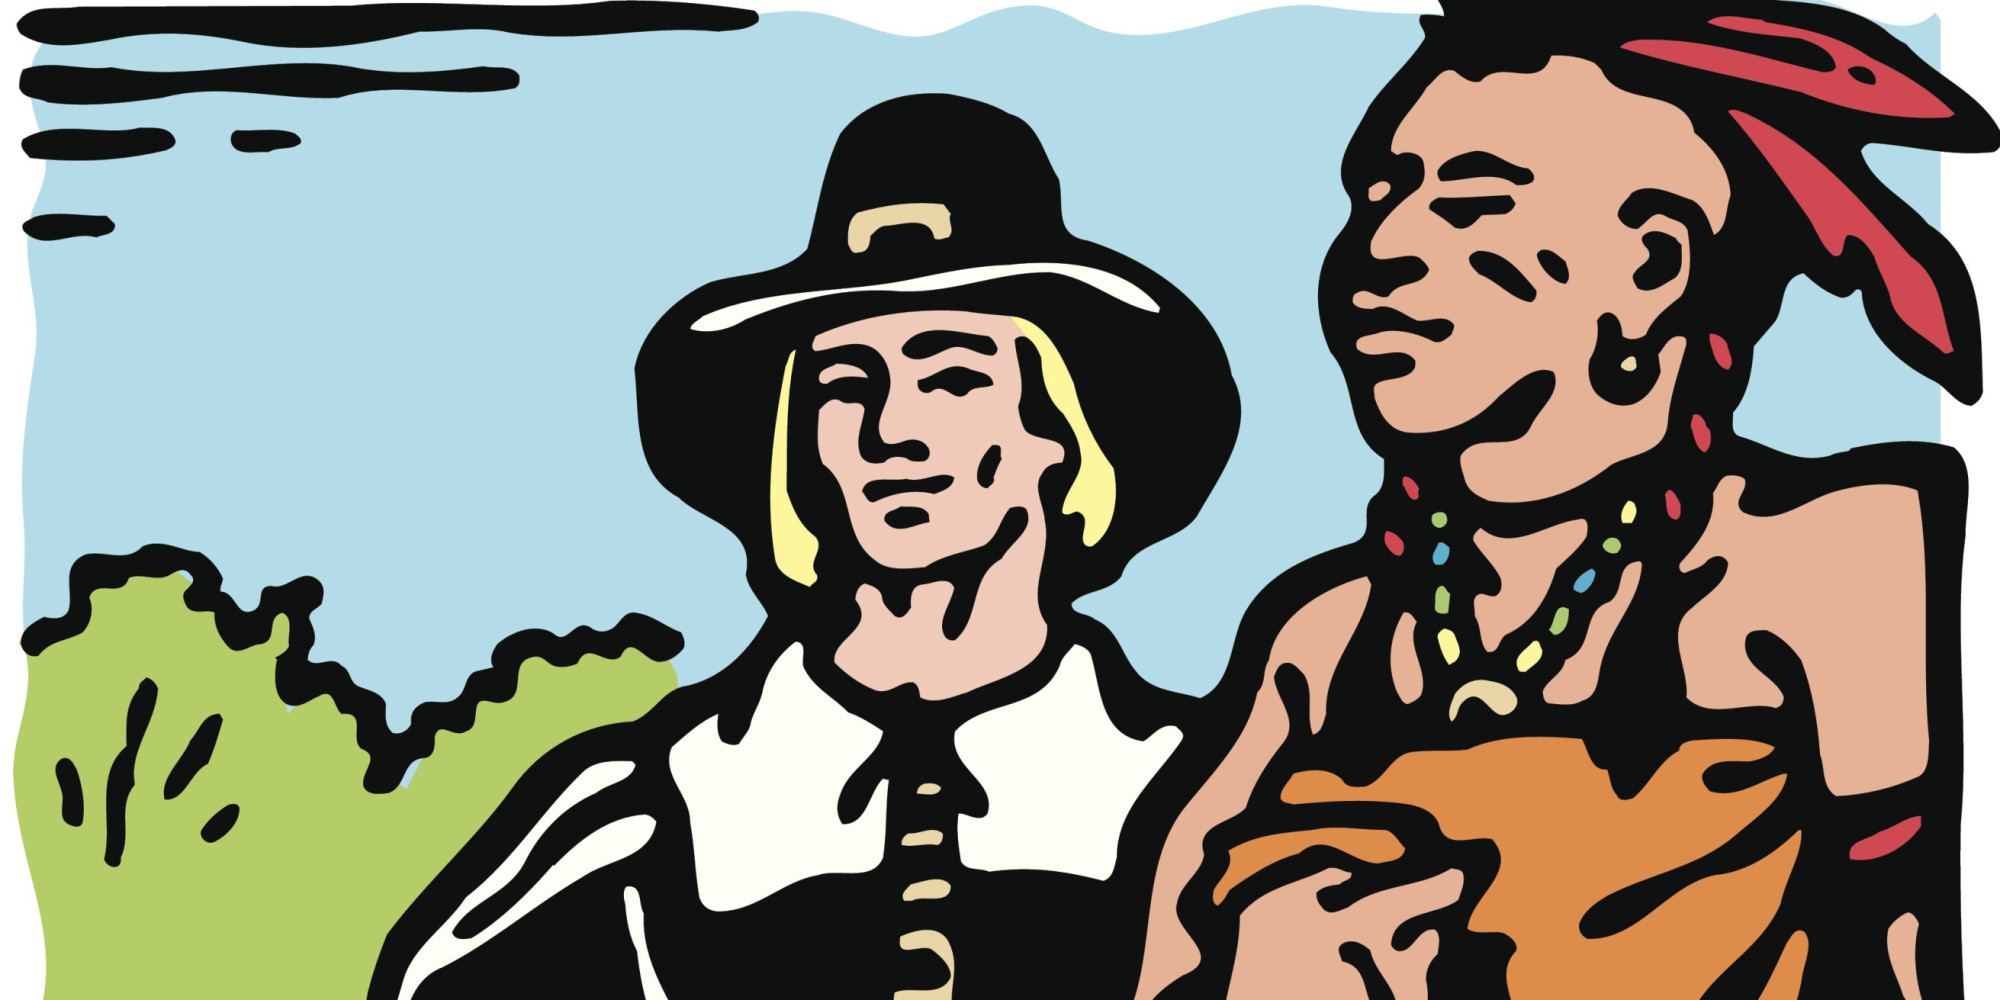 you probably learned a glossed over version of native american